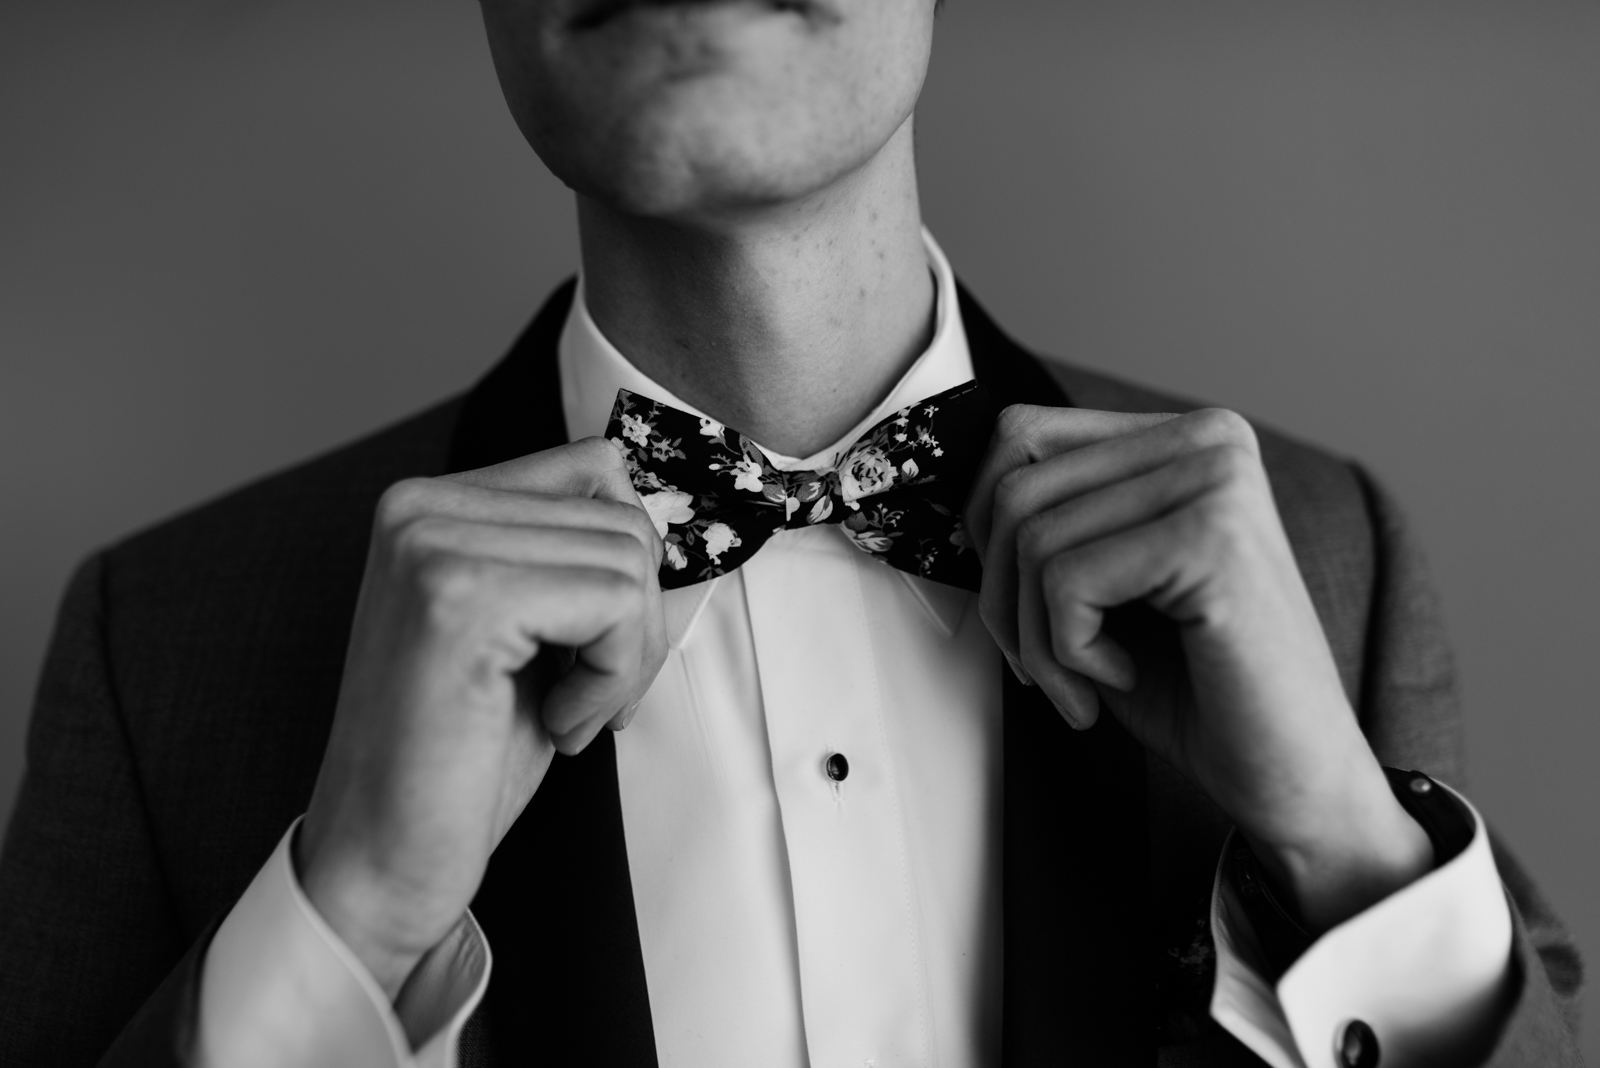 groom adjusting floral bow tie